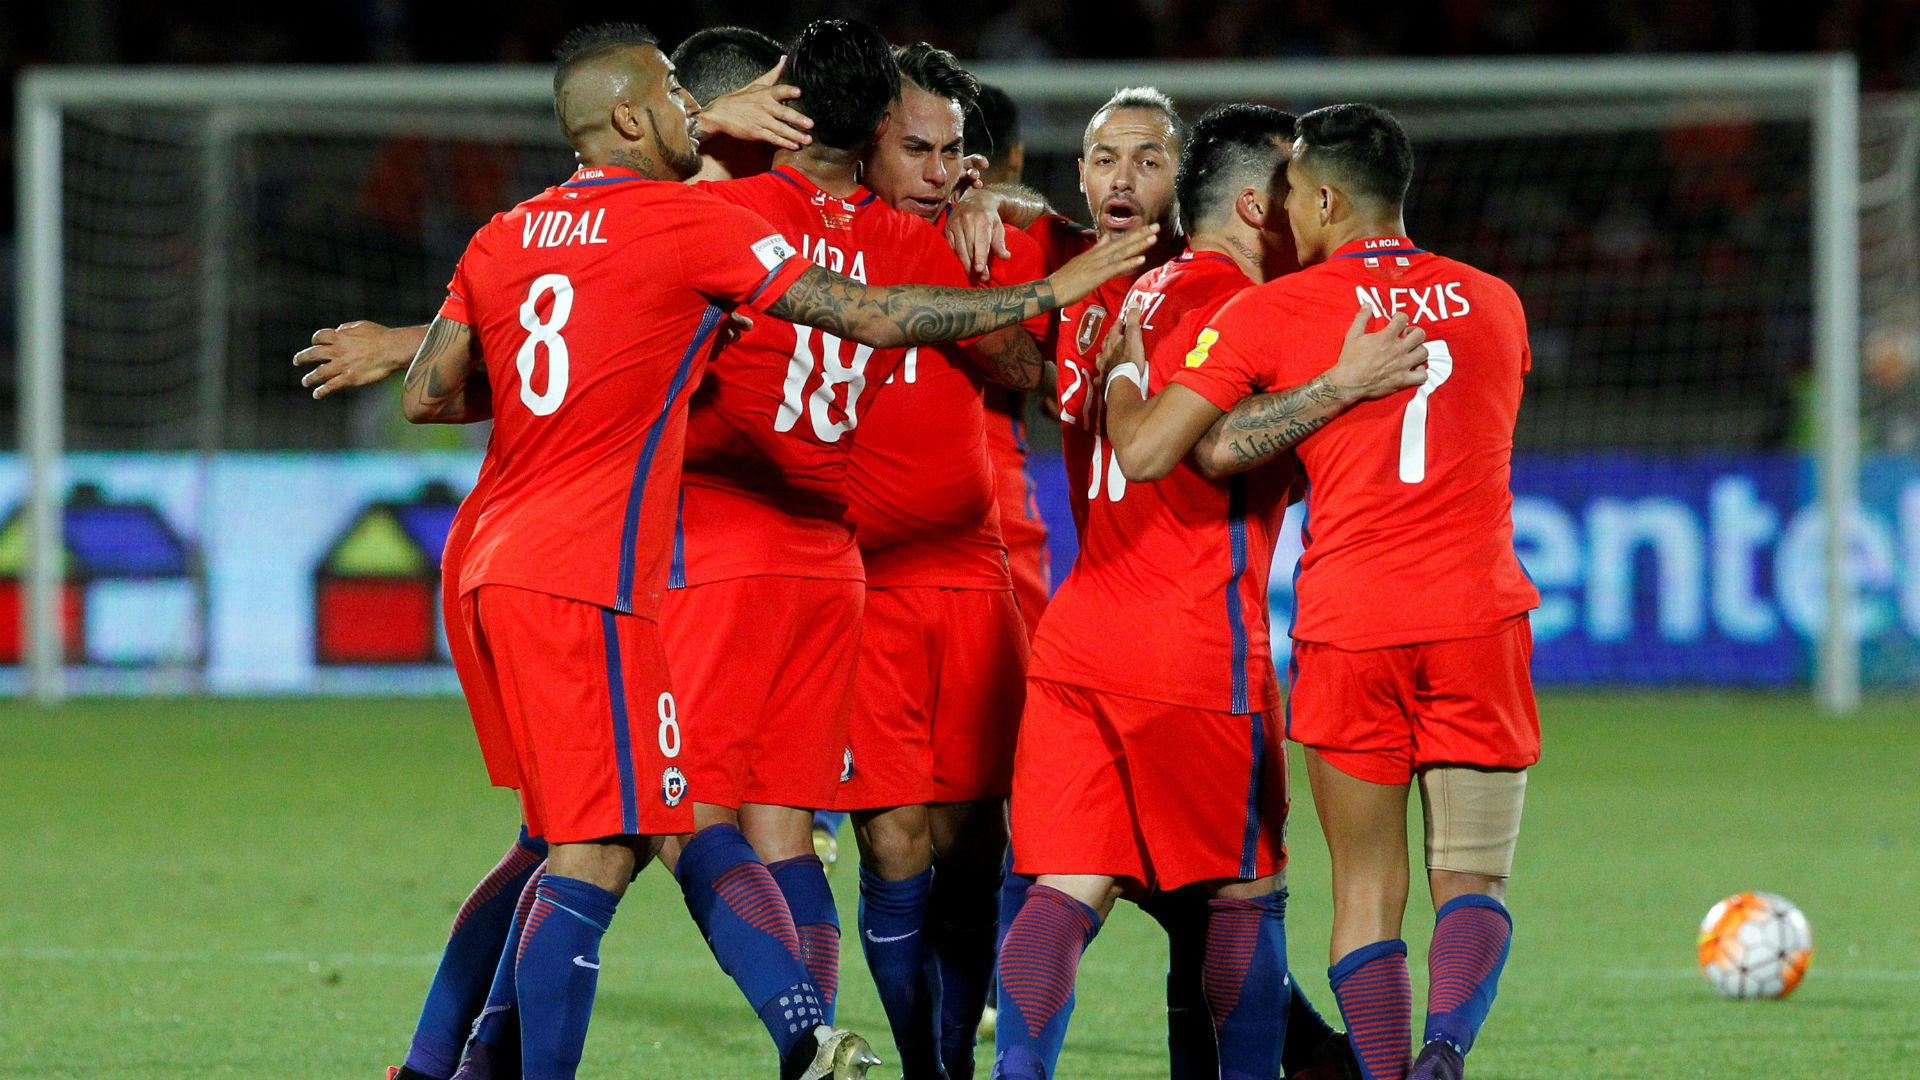 Chile 3-1 Uruguay: Alexis double decisive as hosts fight back